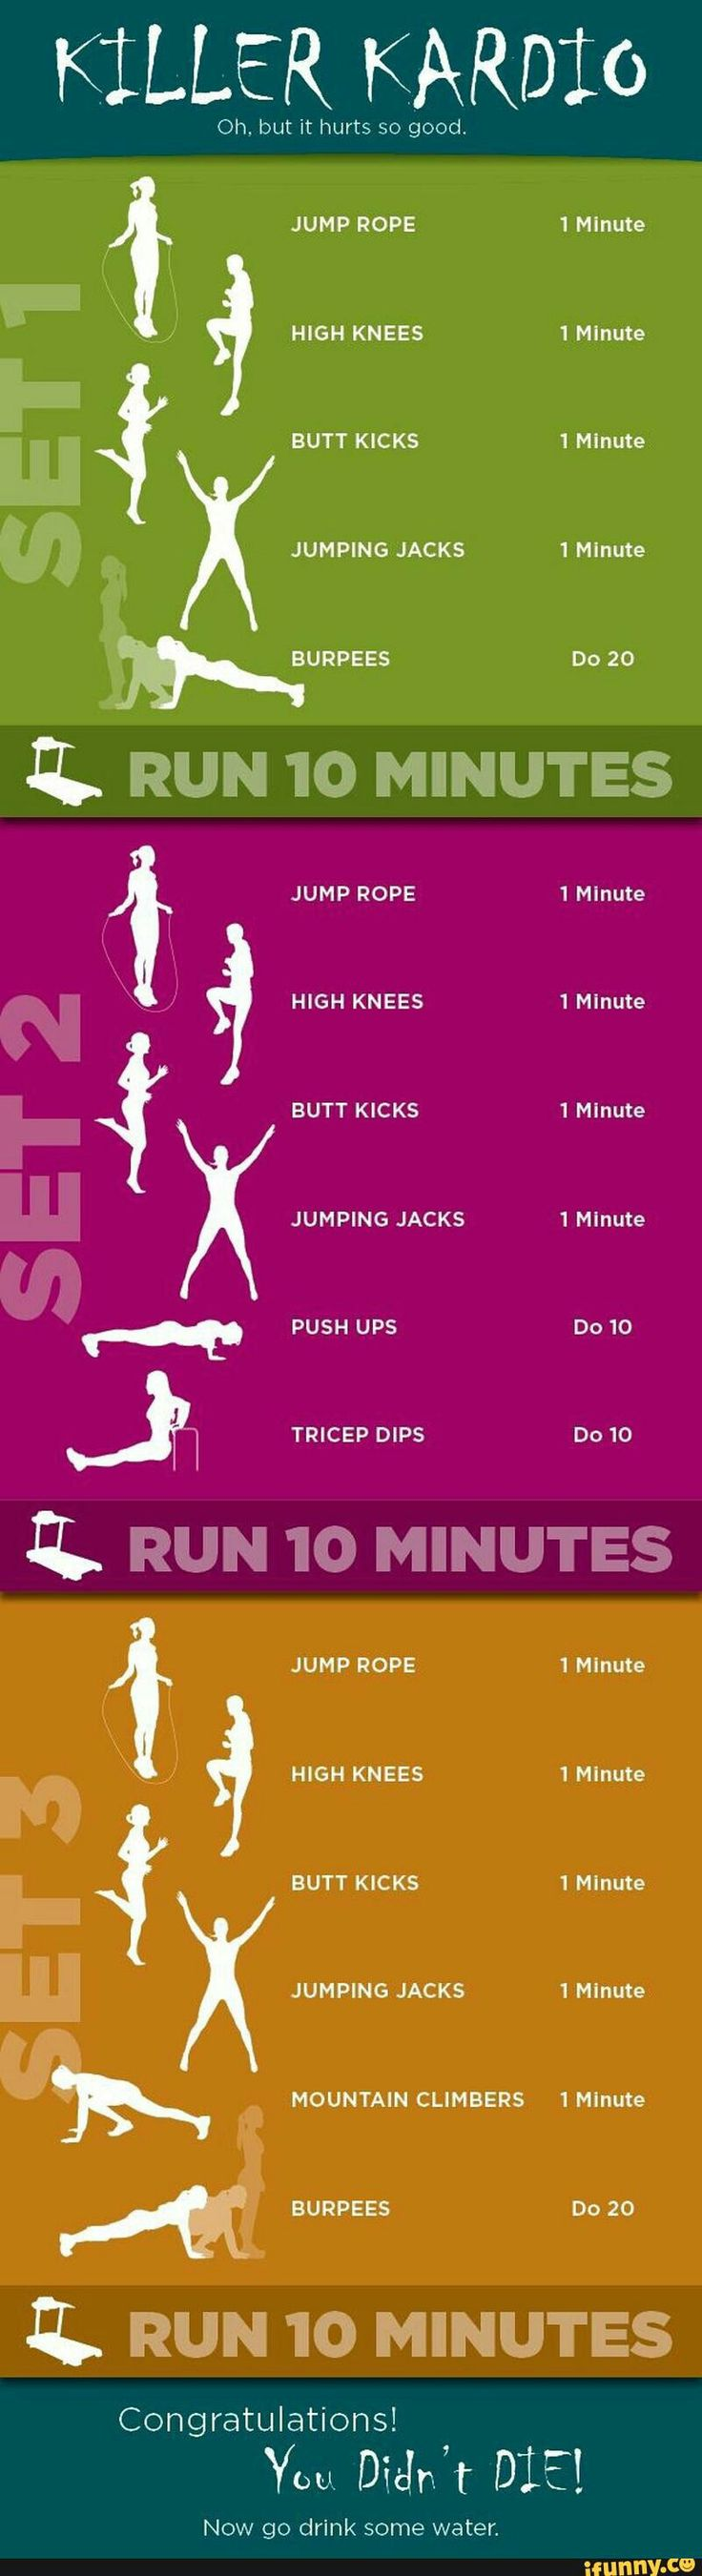 Killer cardio workout, about one hour